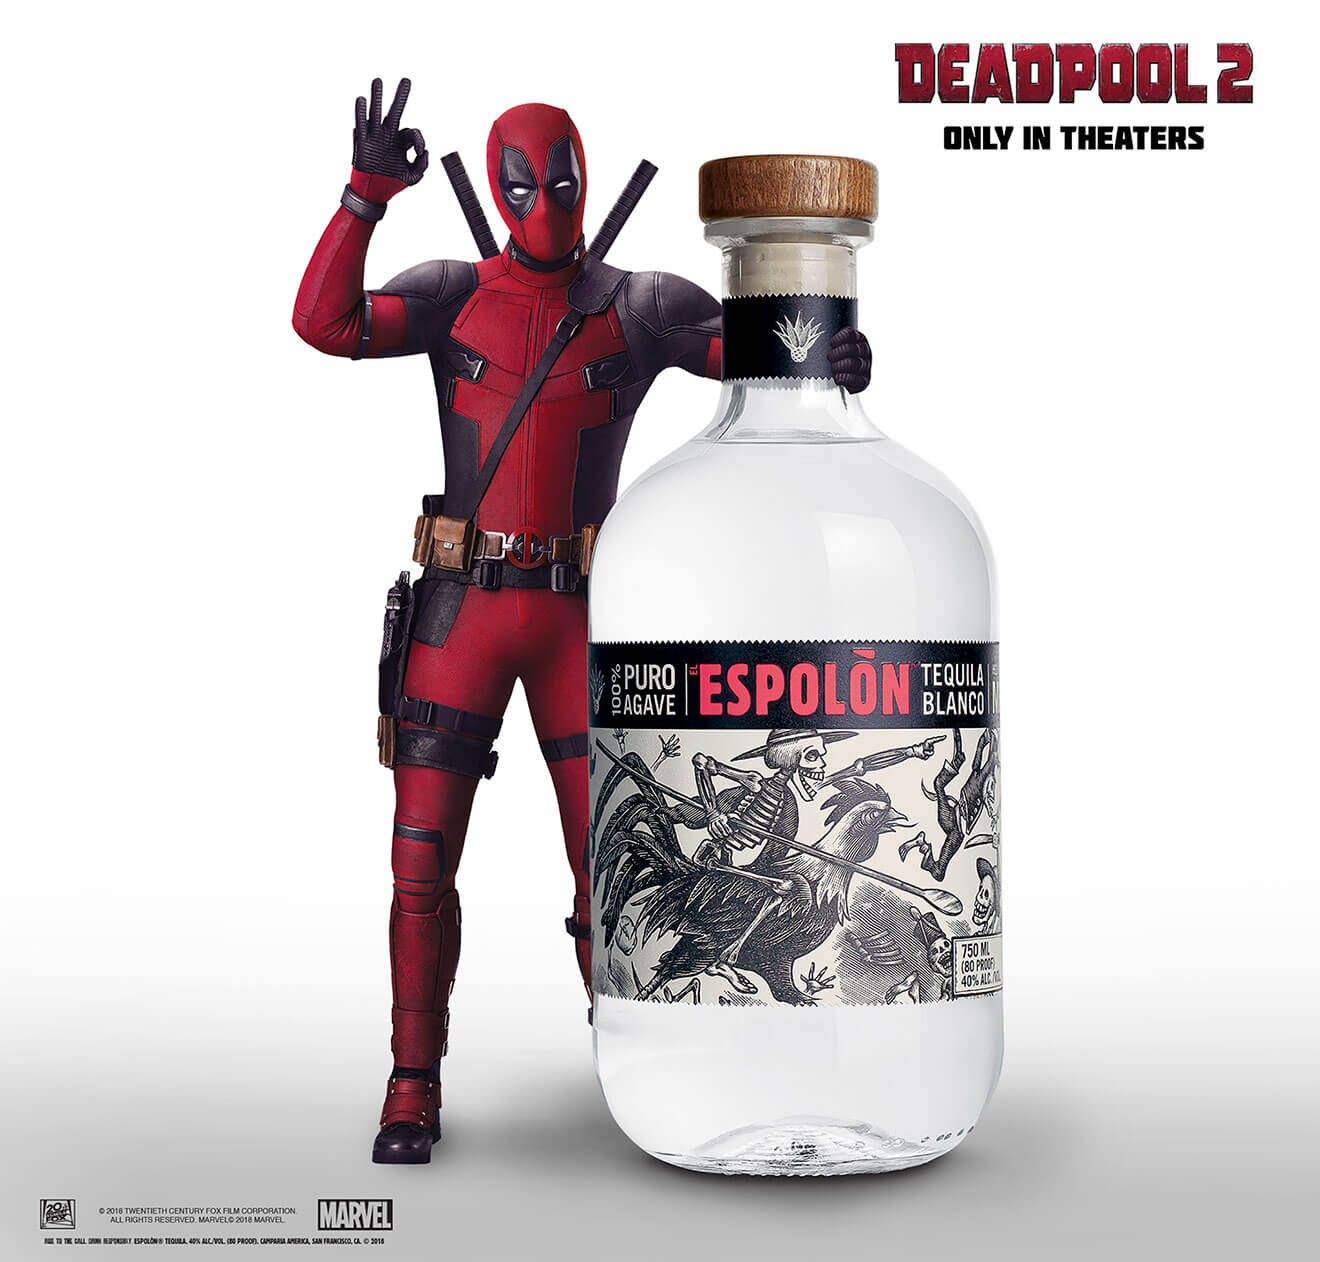 Deadpool is the New Creative Director for Espolòn Tequila